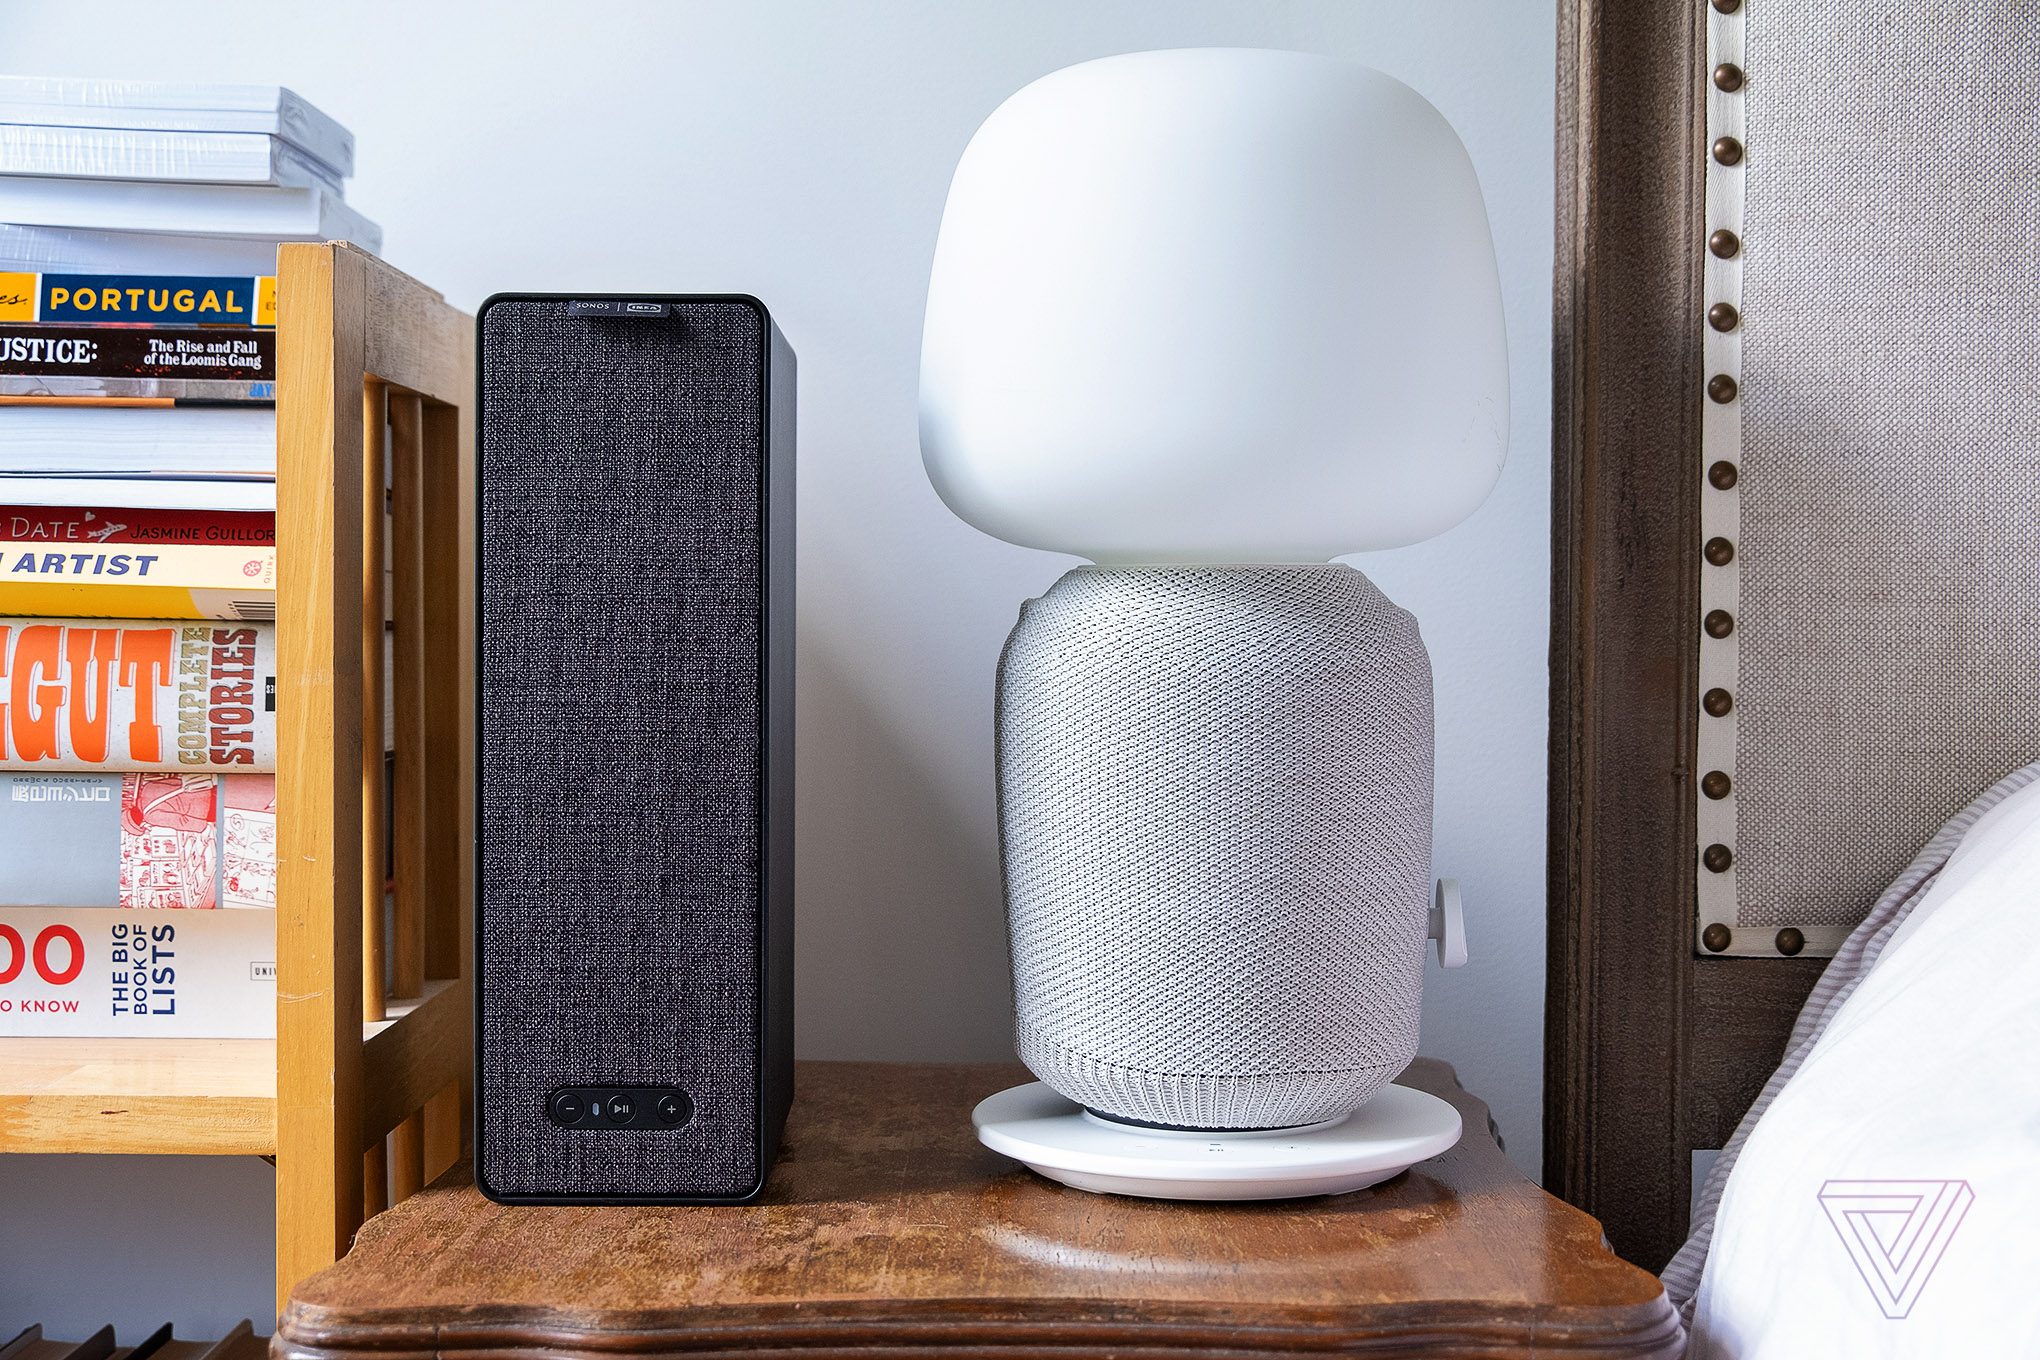 Ikea Symfonisk review: affordable, fun Sonos speakers - The